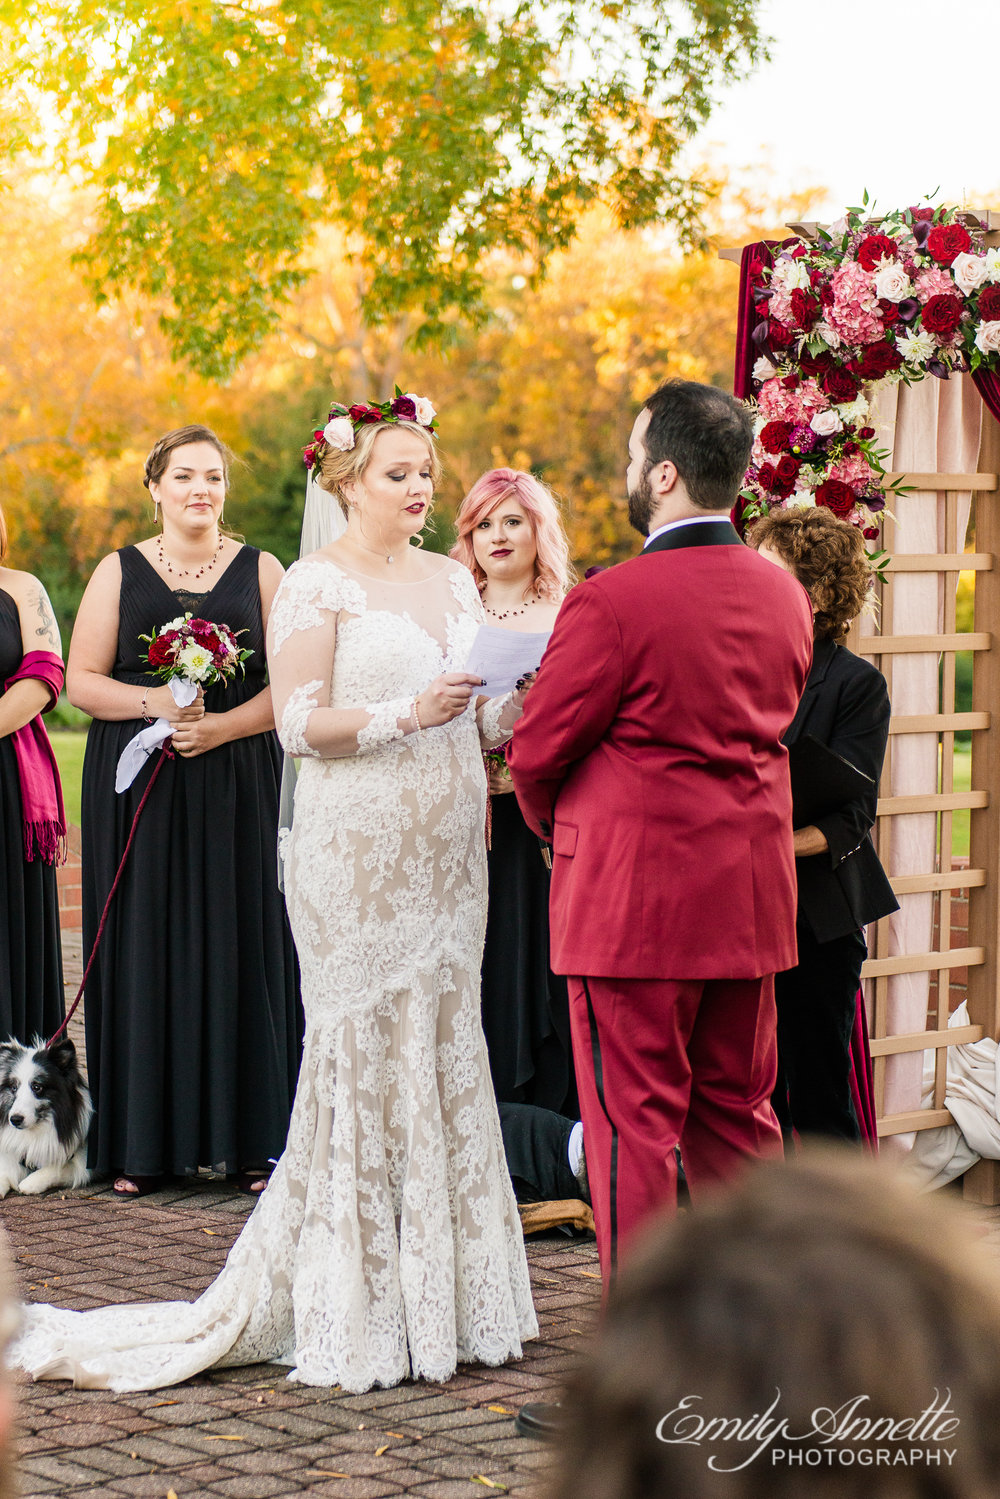 A bride reading her vows to her groom at the altar during an outdoor wedding ceremony at Willow Oaks Country Club in Richmond, Virginia